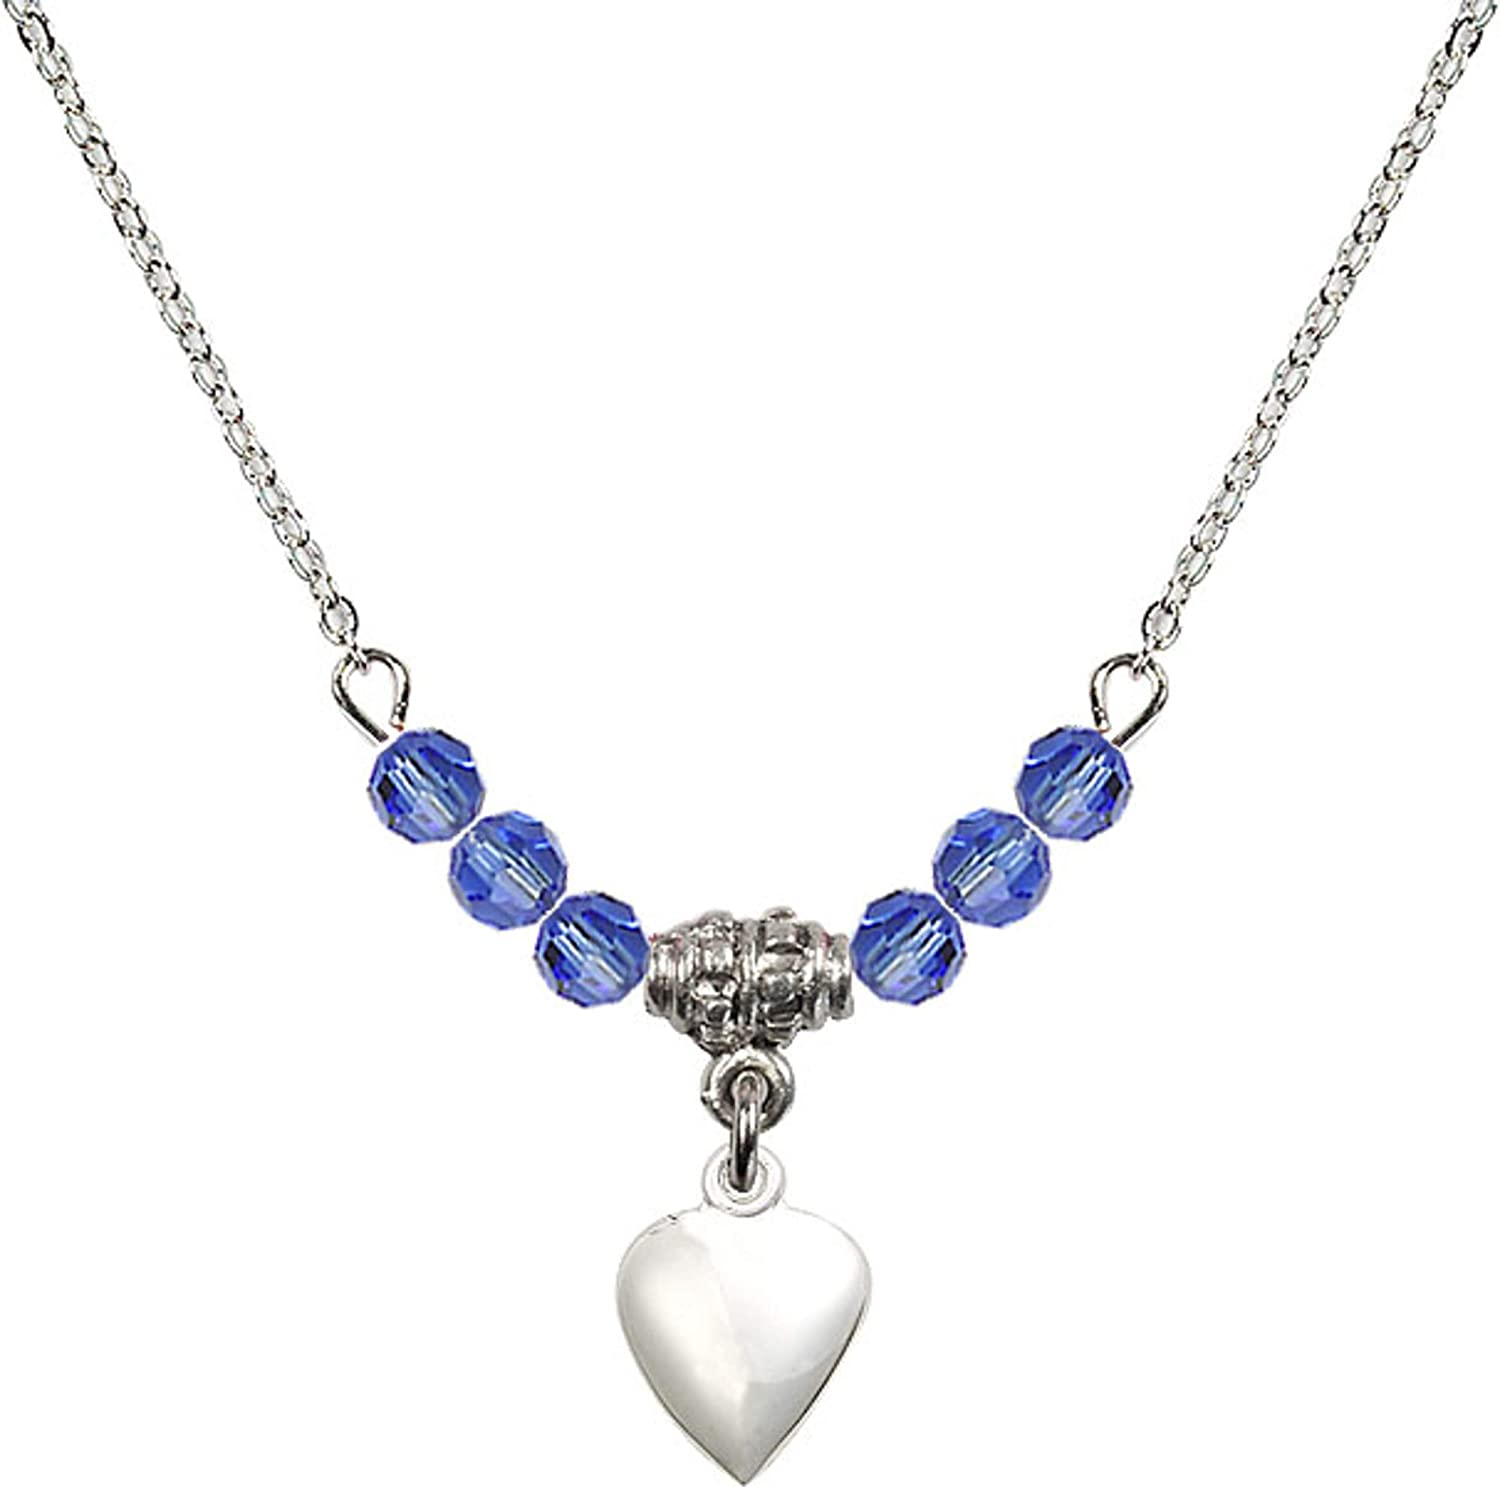 Bonyak Jewelry 18 Inch Rhodium Plated Necklace w// 4mm Blue September Birth Month Stone Beads and Heart Charm